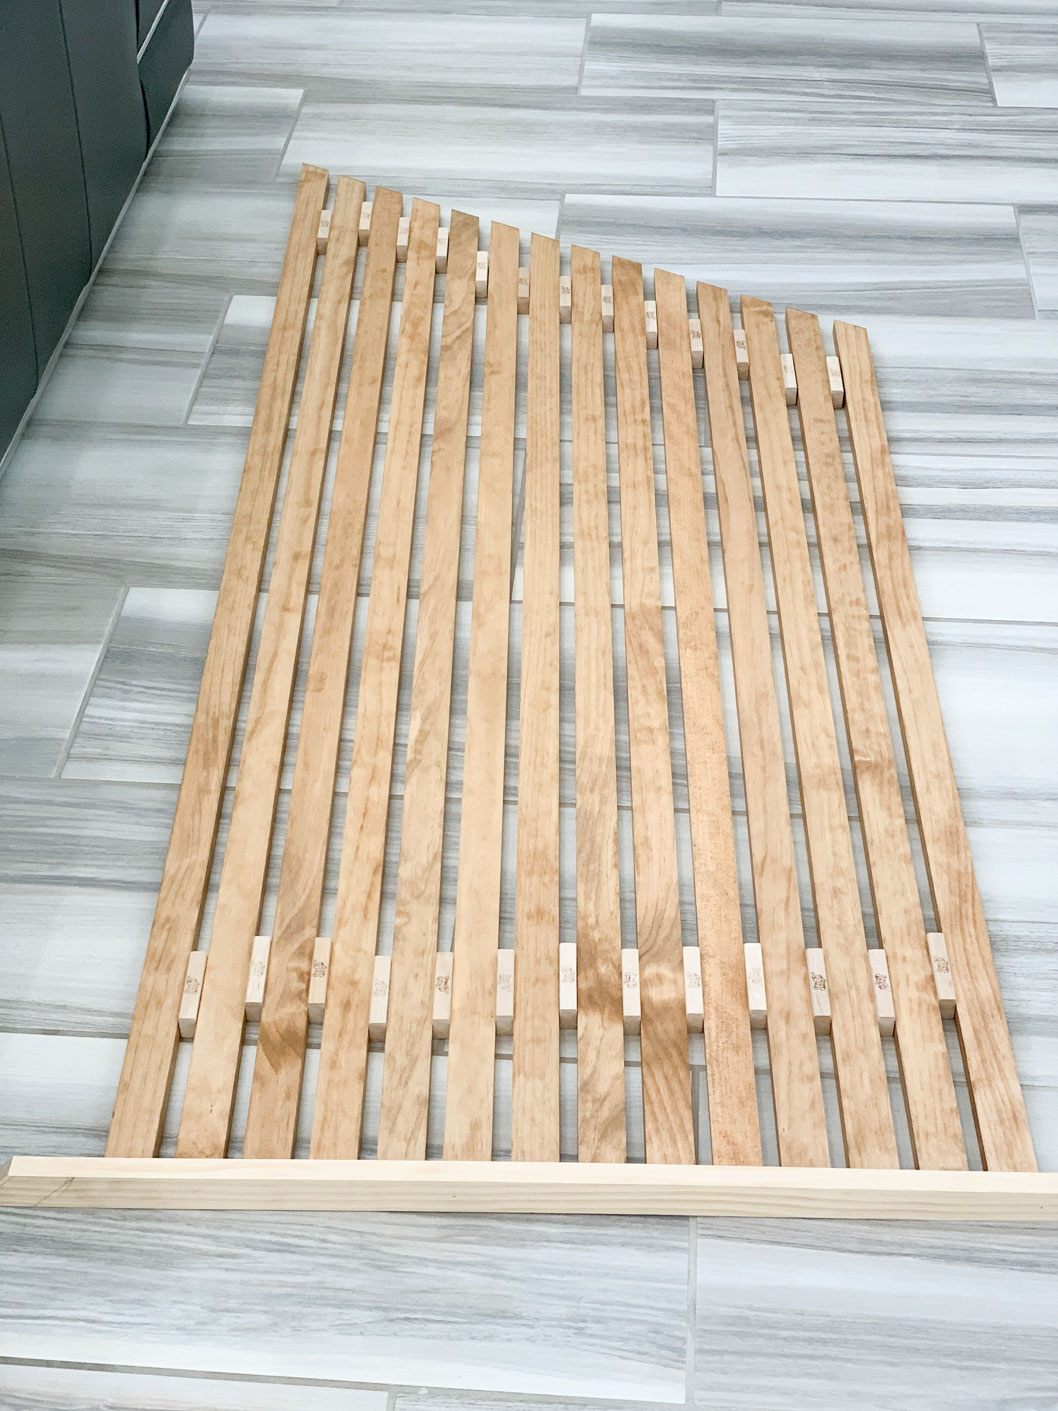 Vertical wood slats stained brown.